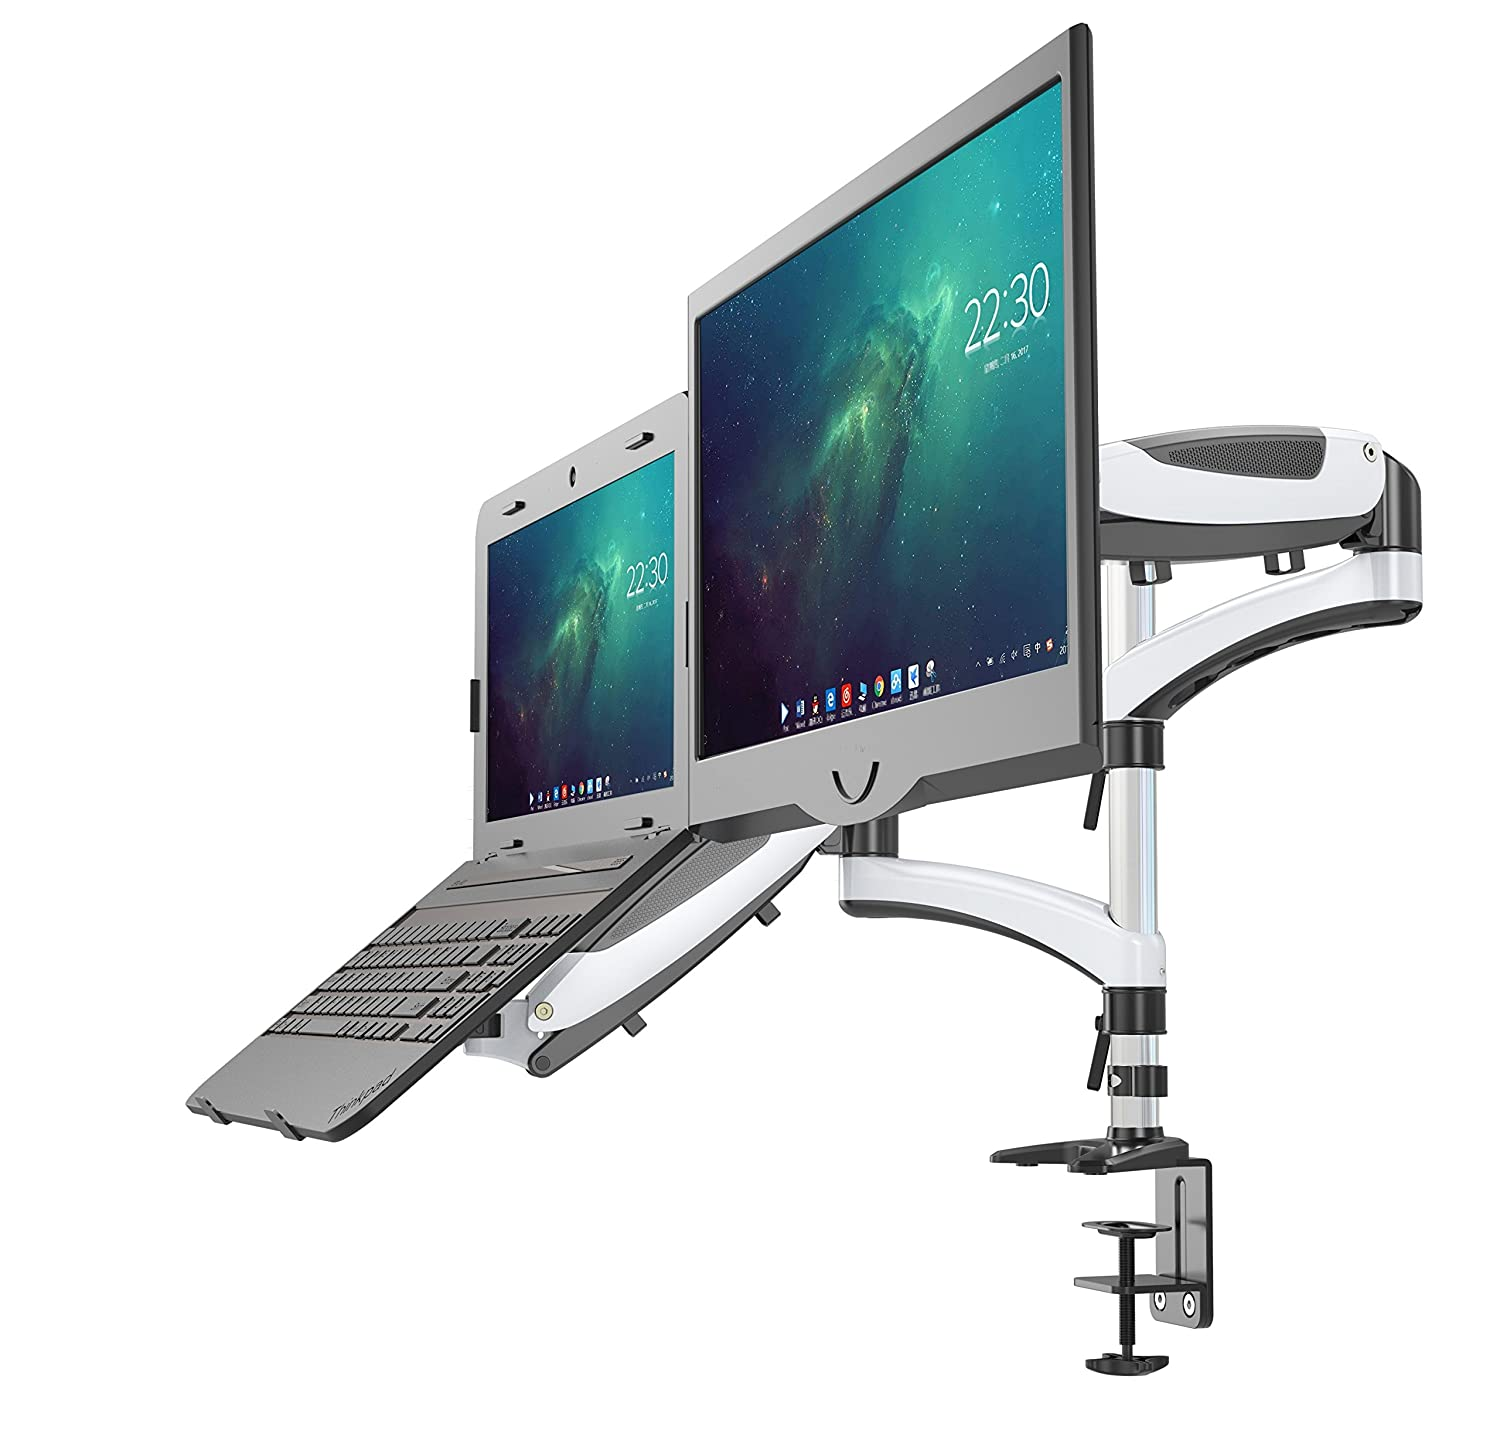 Fully Adjustable Dual Gas Spring 2in1 Monitor & Laptop OR Double Monitors Mount/Stand with 2 Swing Arms for Monitors up to 27, Both Desk Clamp and Grommet Mounting Options in The Box, LH08 (White) Shoppingall